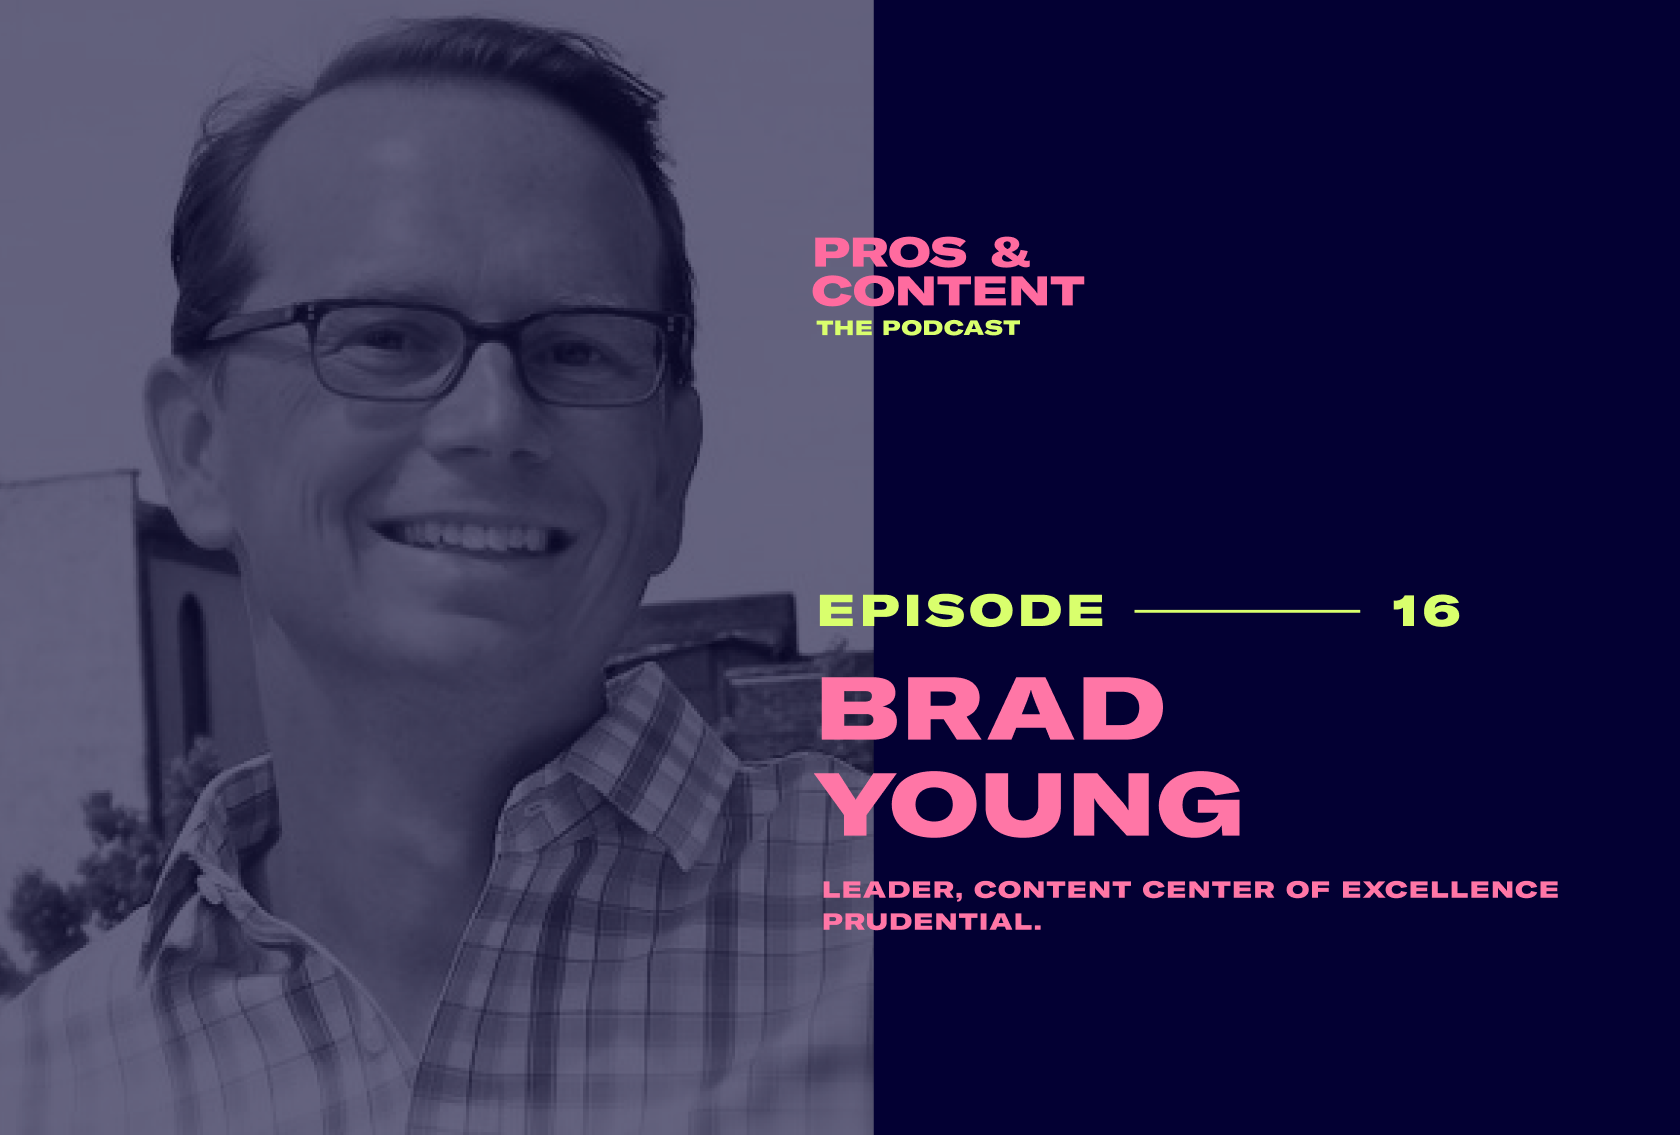 Pros & Content Podcast: Brad Young